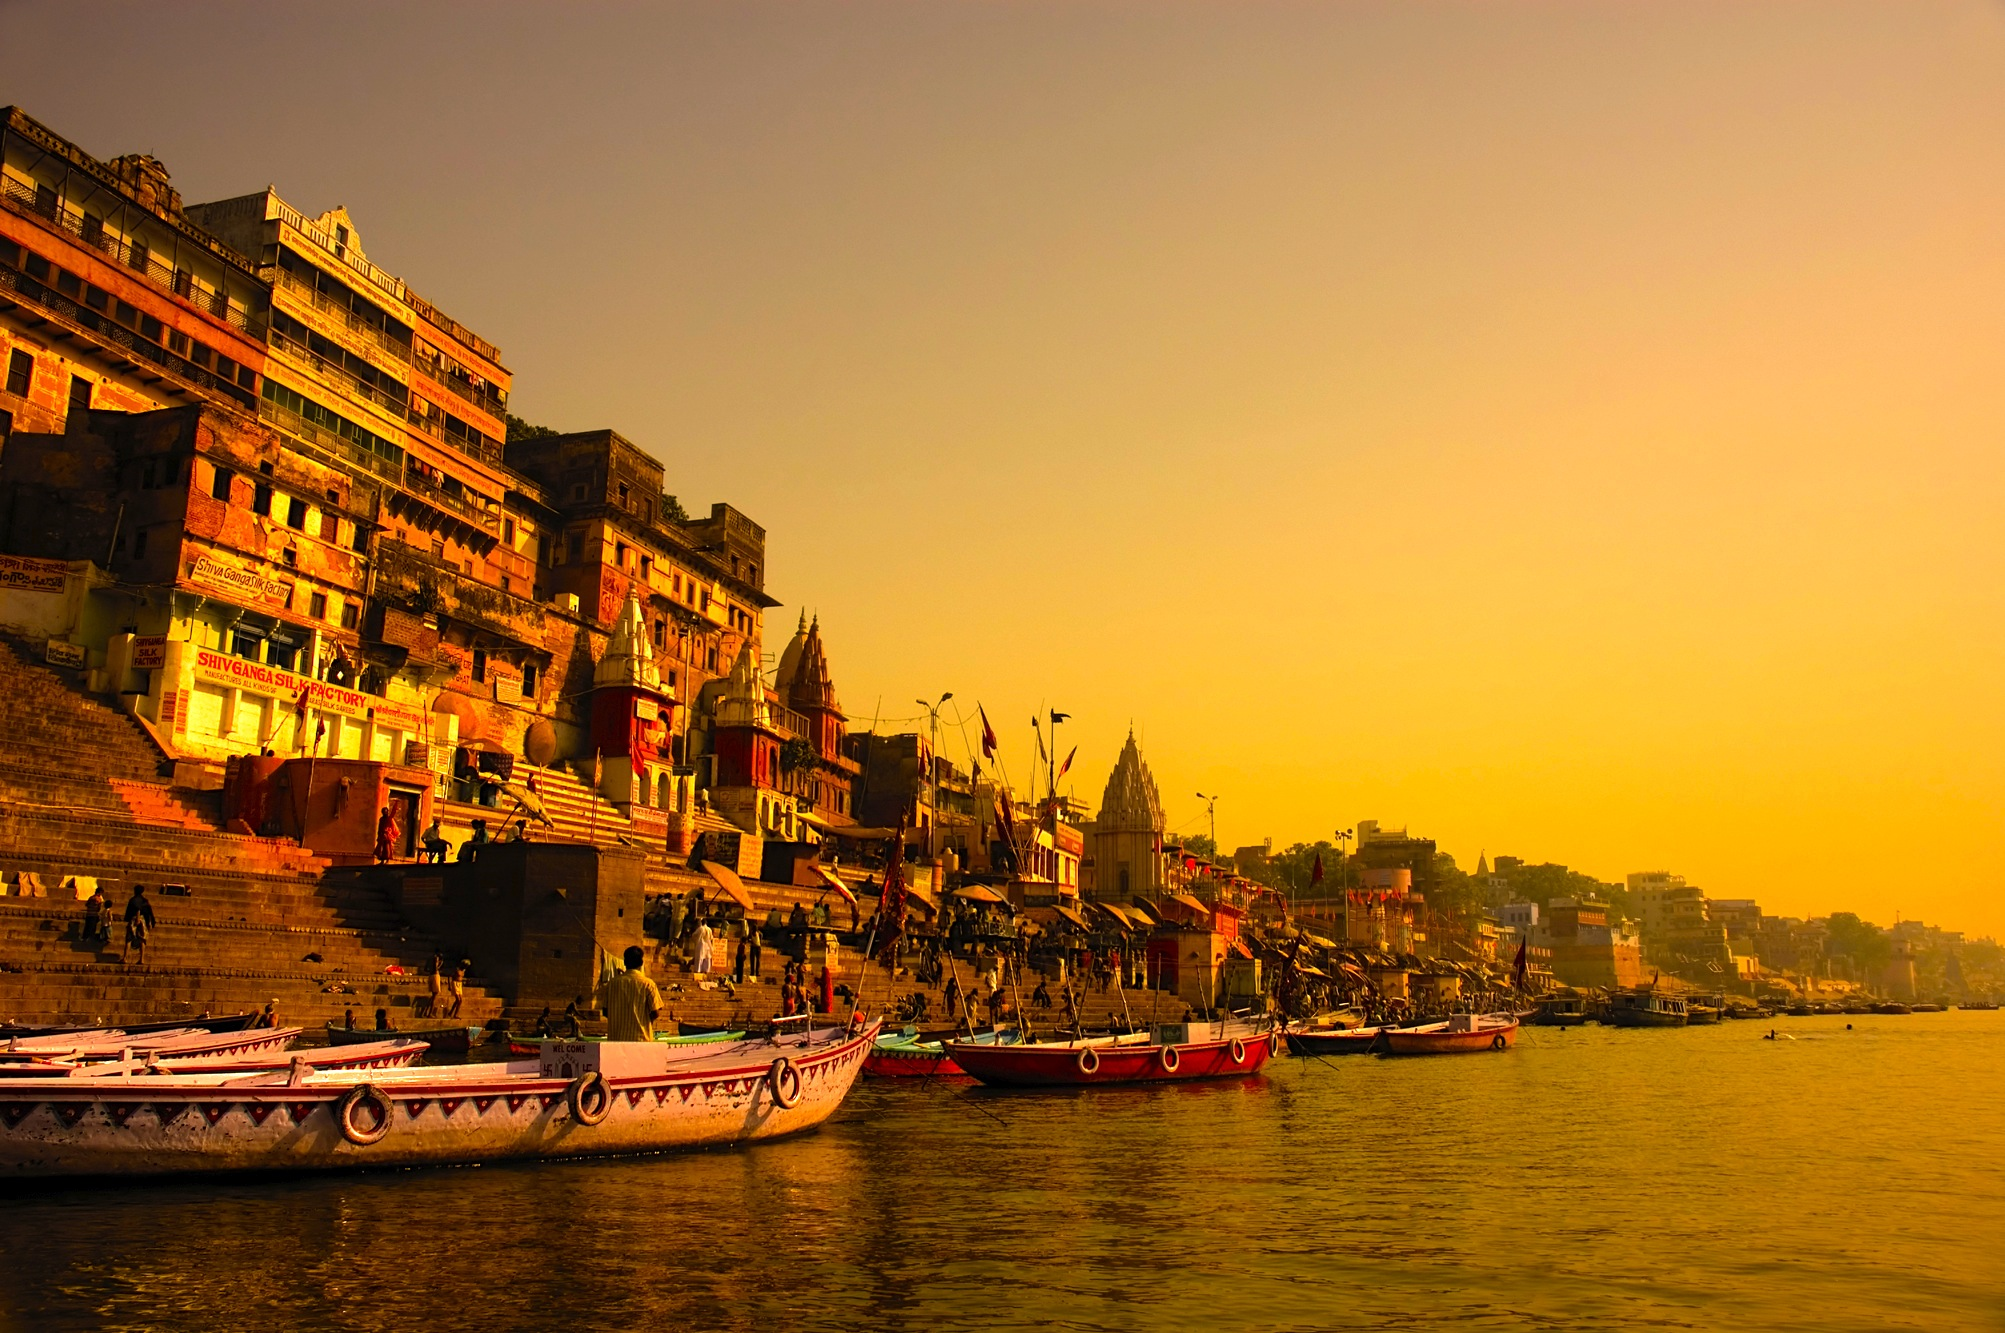 places in India that you must visit, places in india to visit, places in india to see, places in india to travel, best places to visit in india, places in india to visit, top places to visit in india